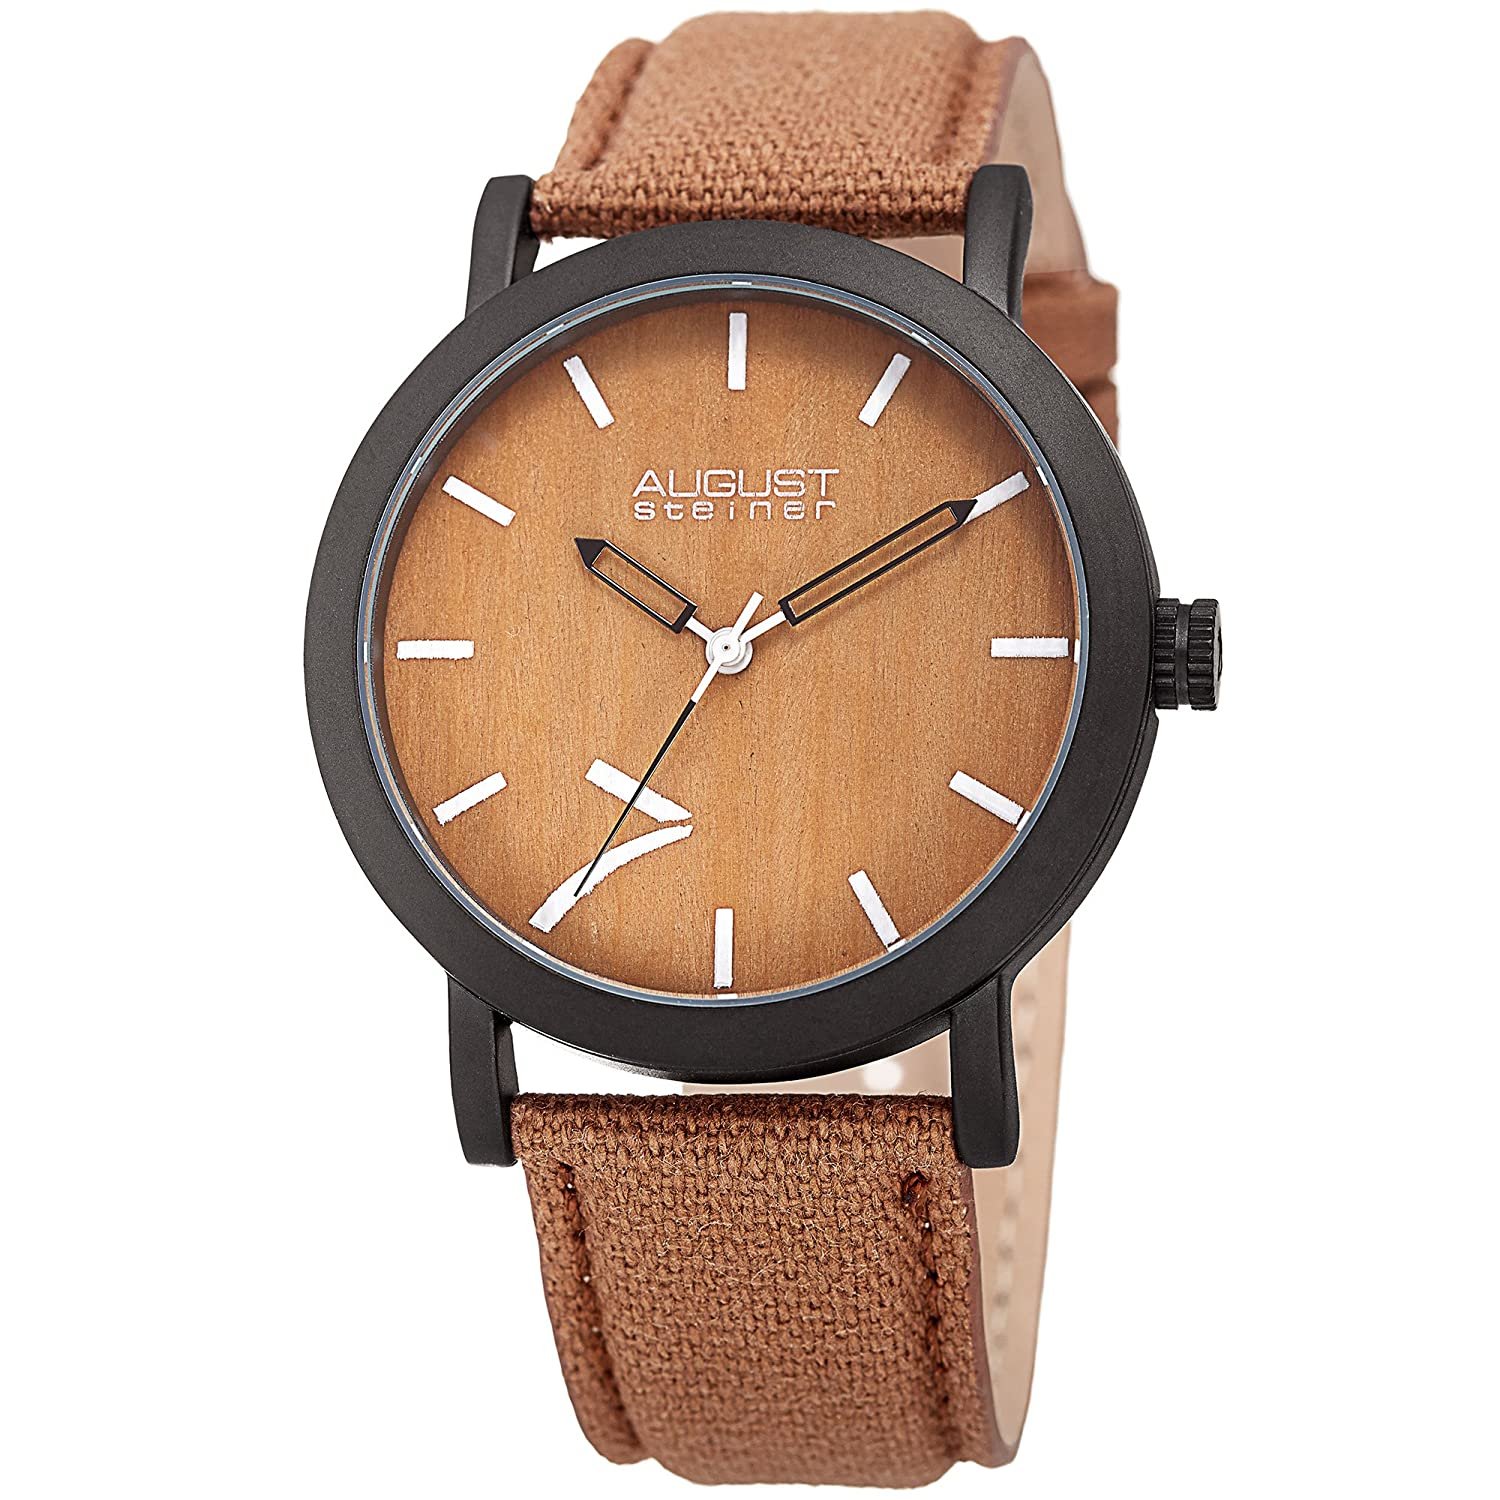 August Steiner Men 's QuartzステンレススチールandレザーCasual Watch, Color : Brown (Model : as8238br) B01M0M1CTB